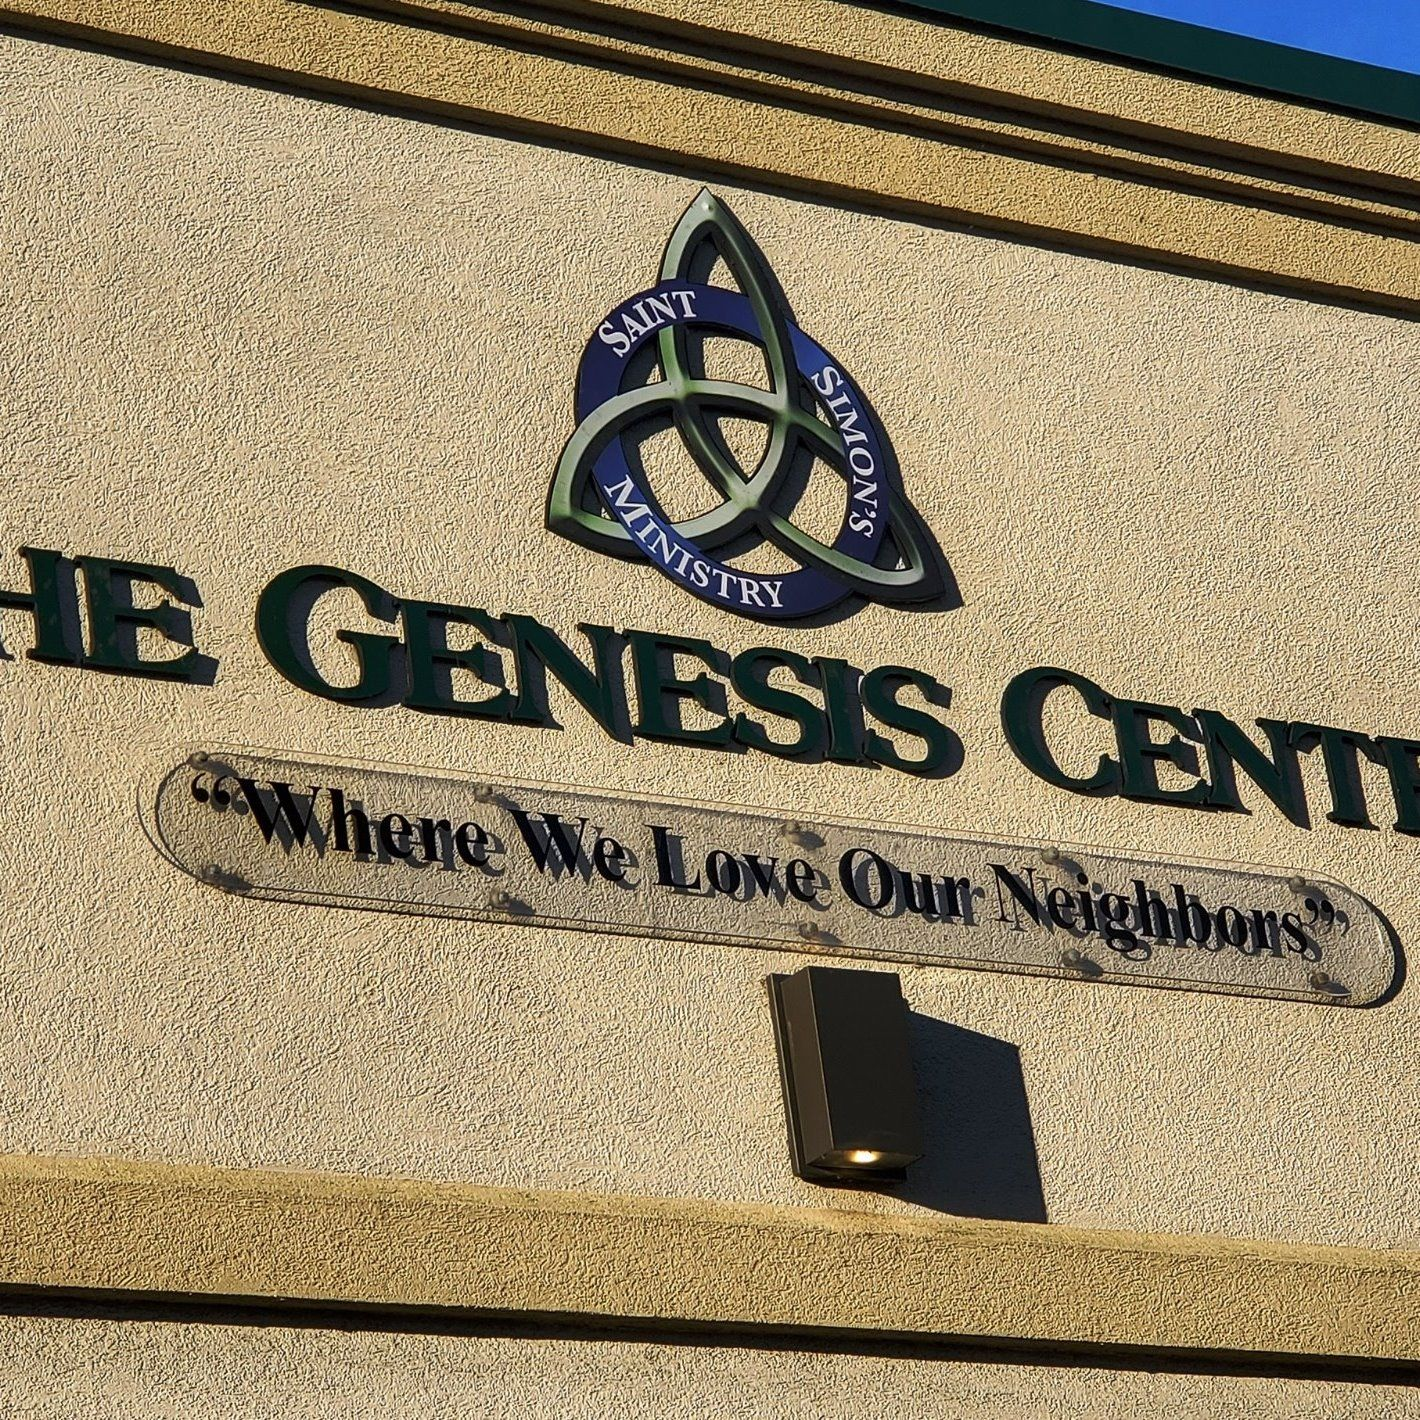 St. Simon's Mission at The Genesis Center